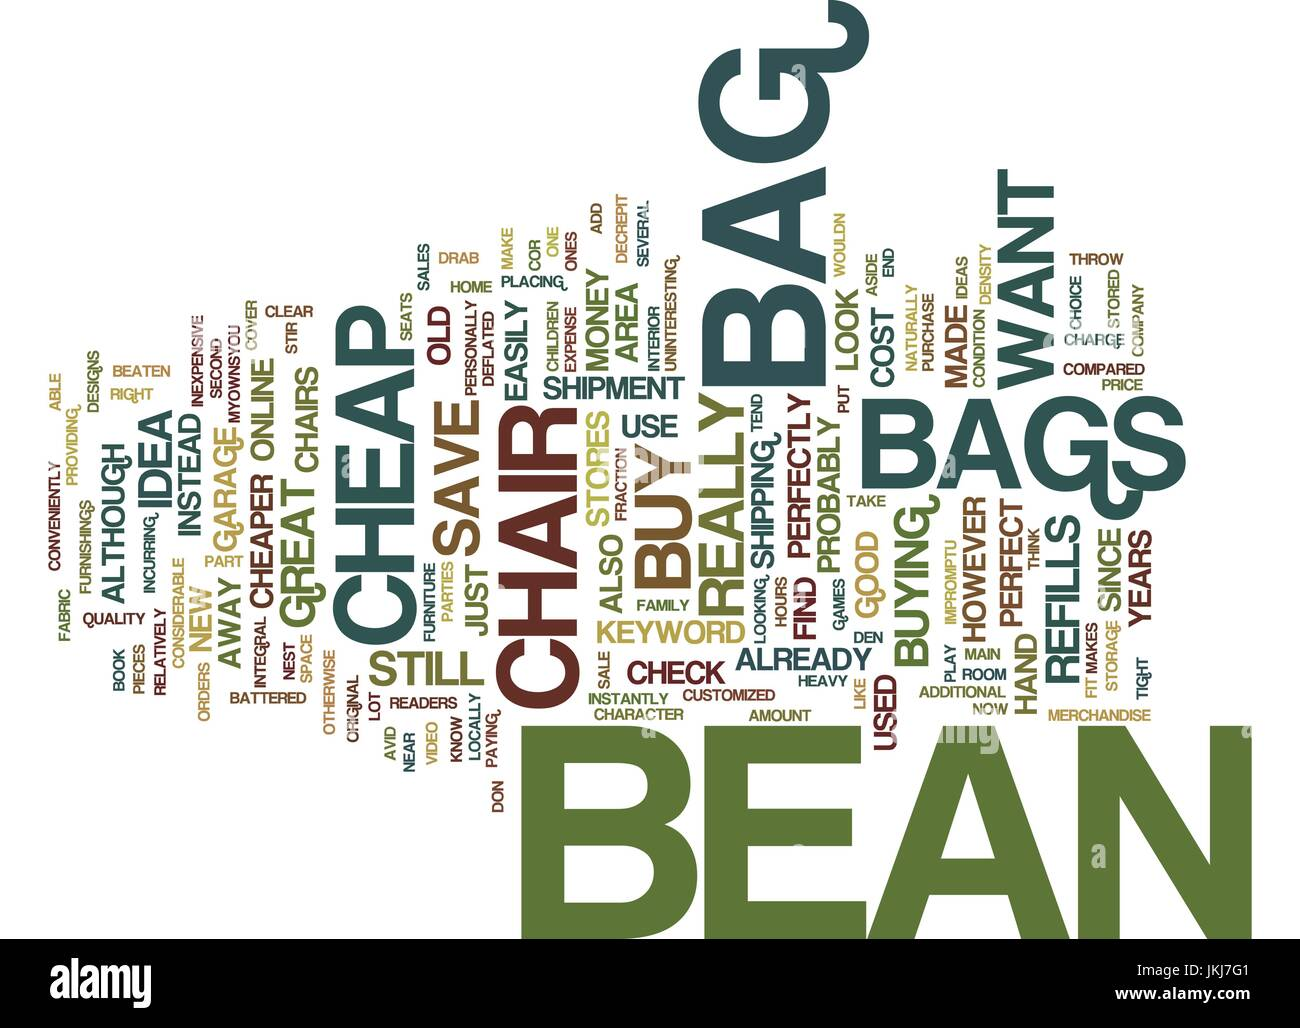 FIND THAT PERFECTLY CHEAP BEAN BAG CHAIR Text Background Word Cloud Concept - Stock Vector